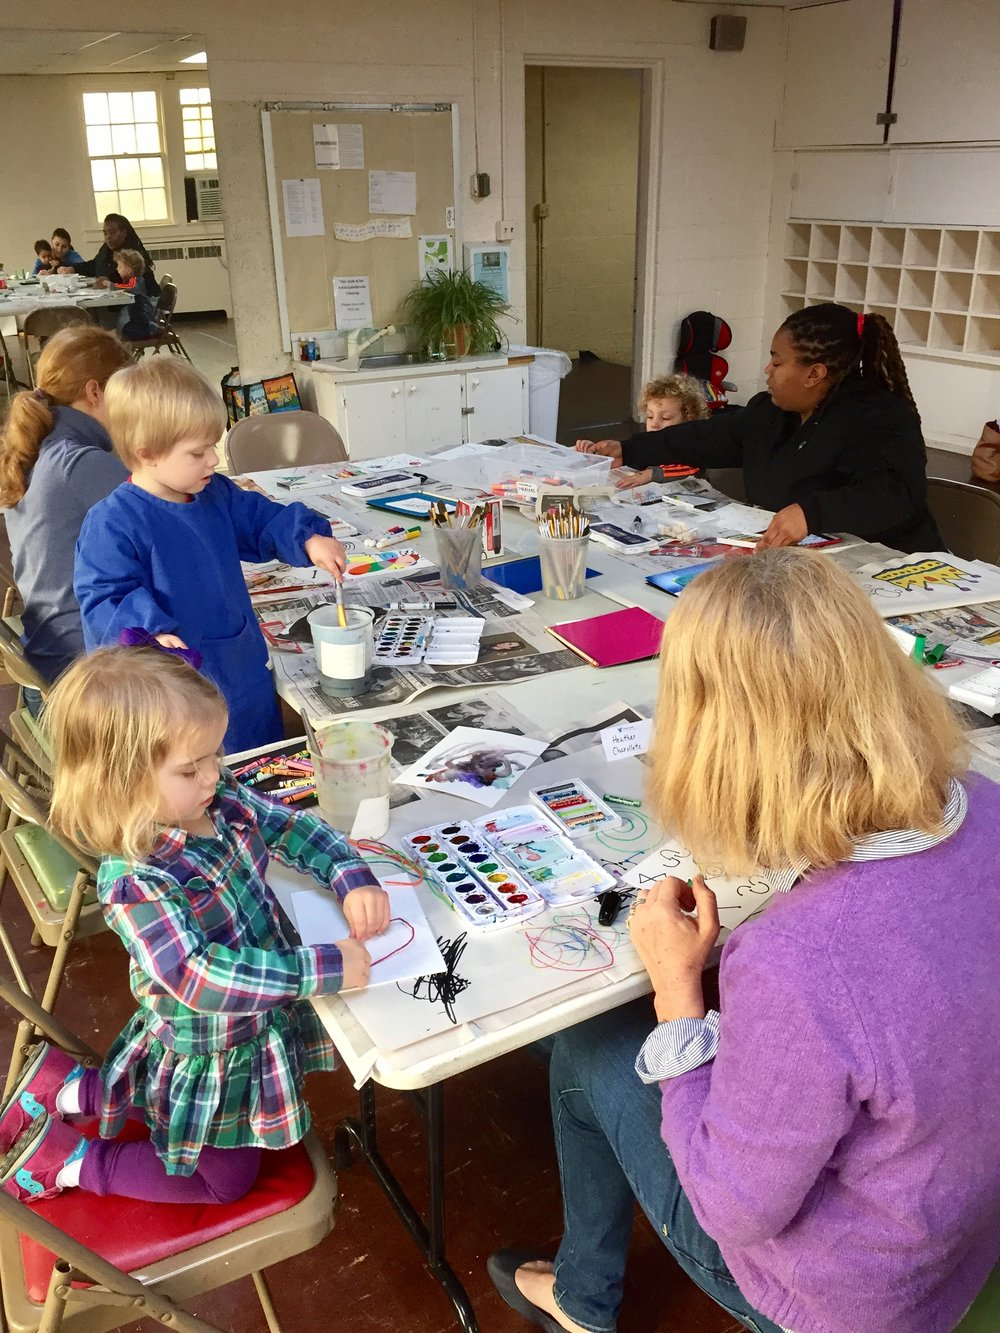 My Art Mom's Art Playgroup